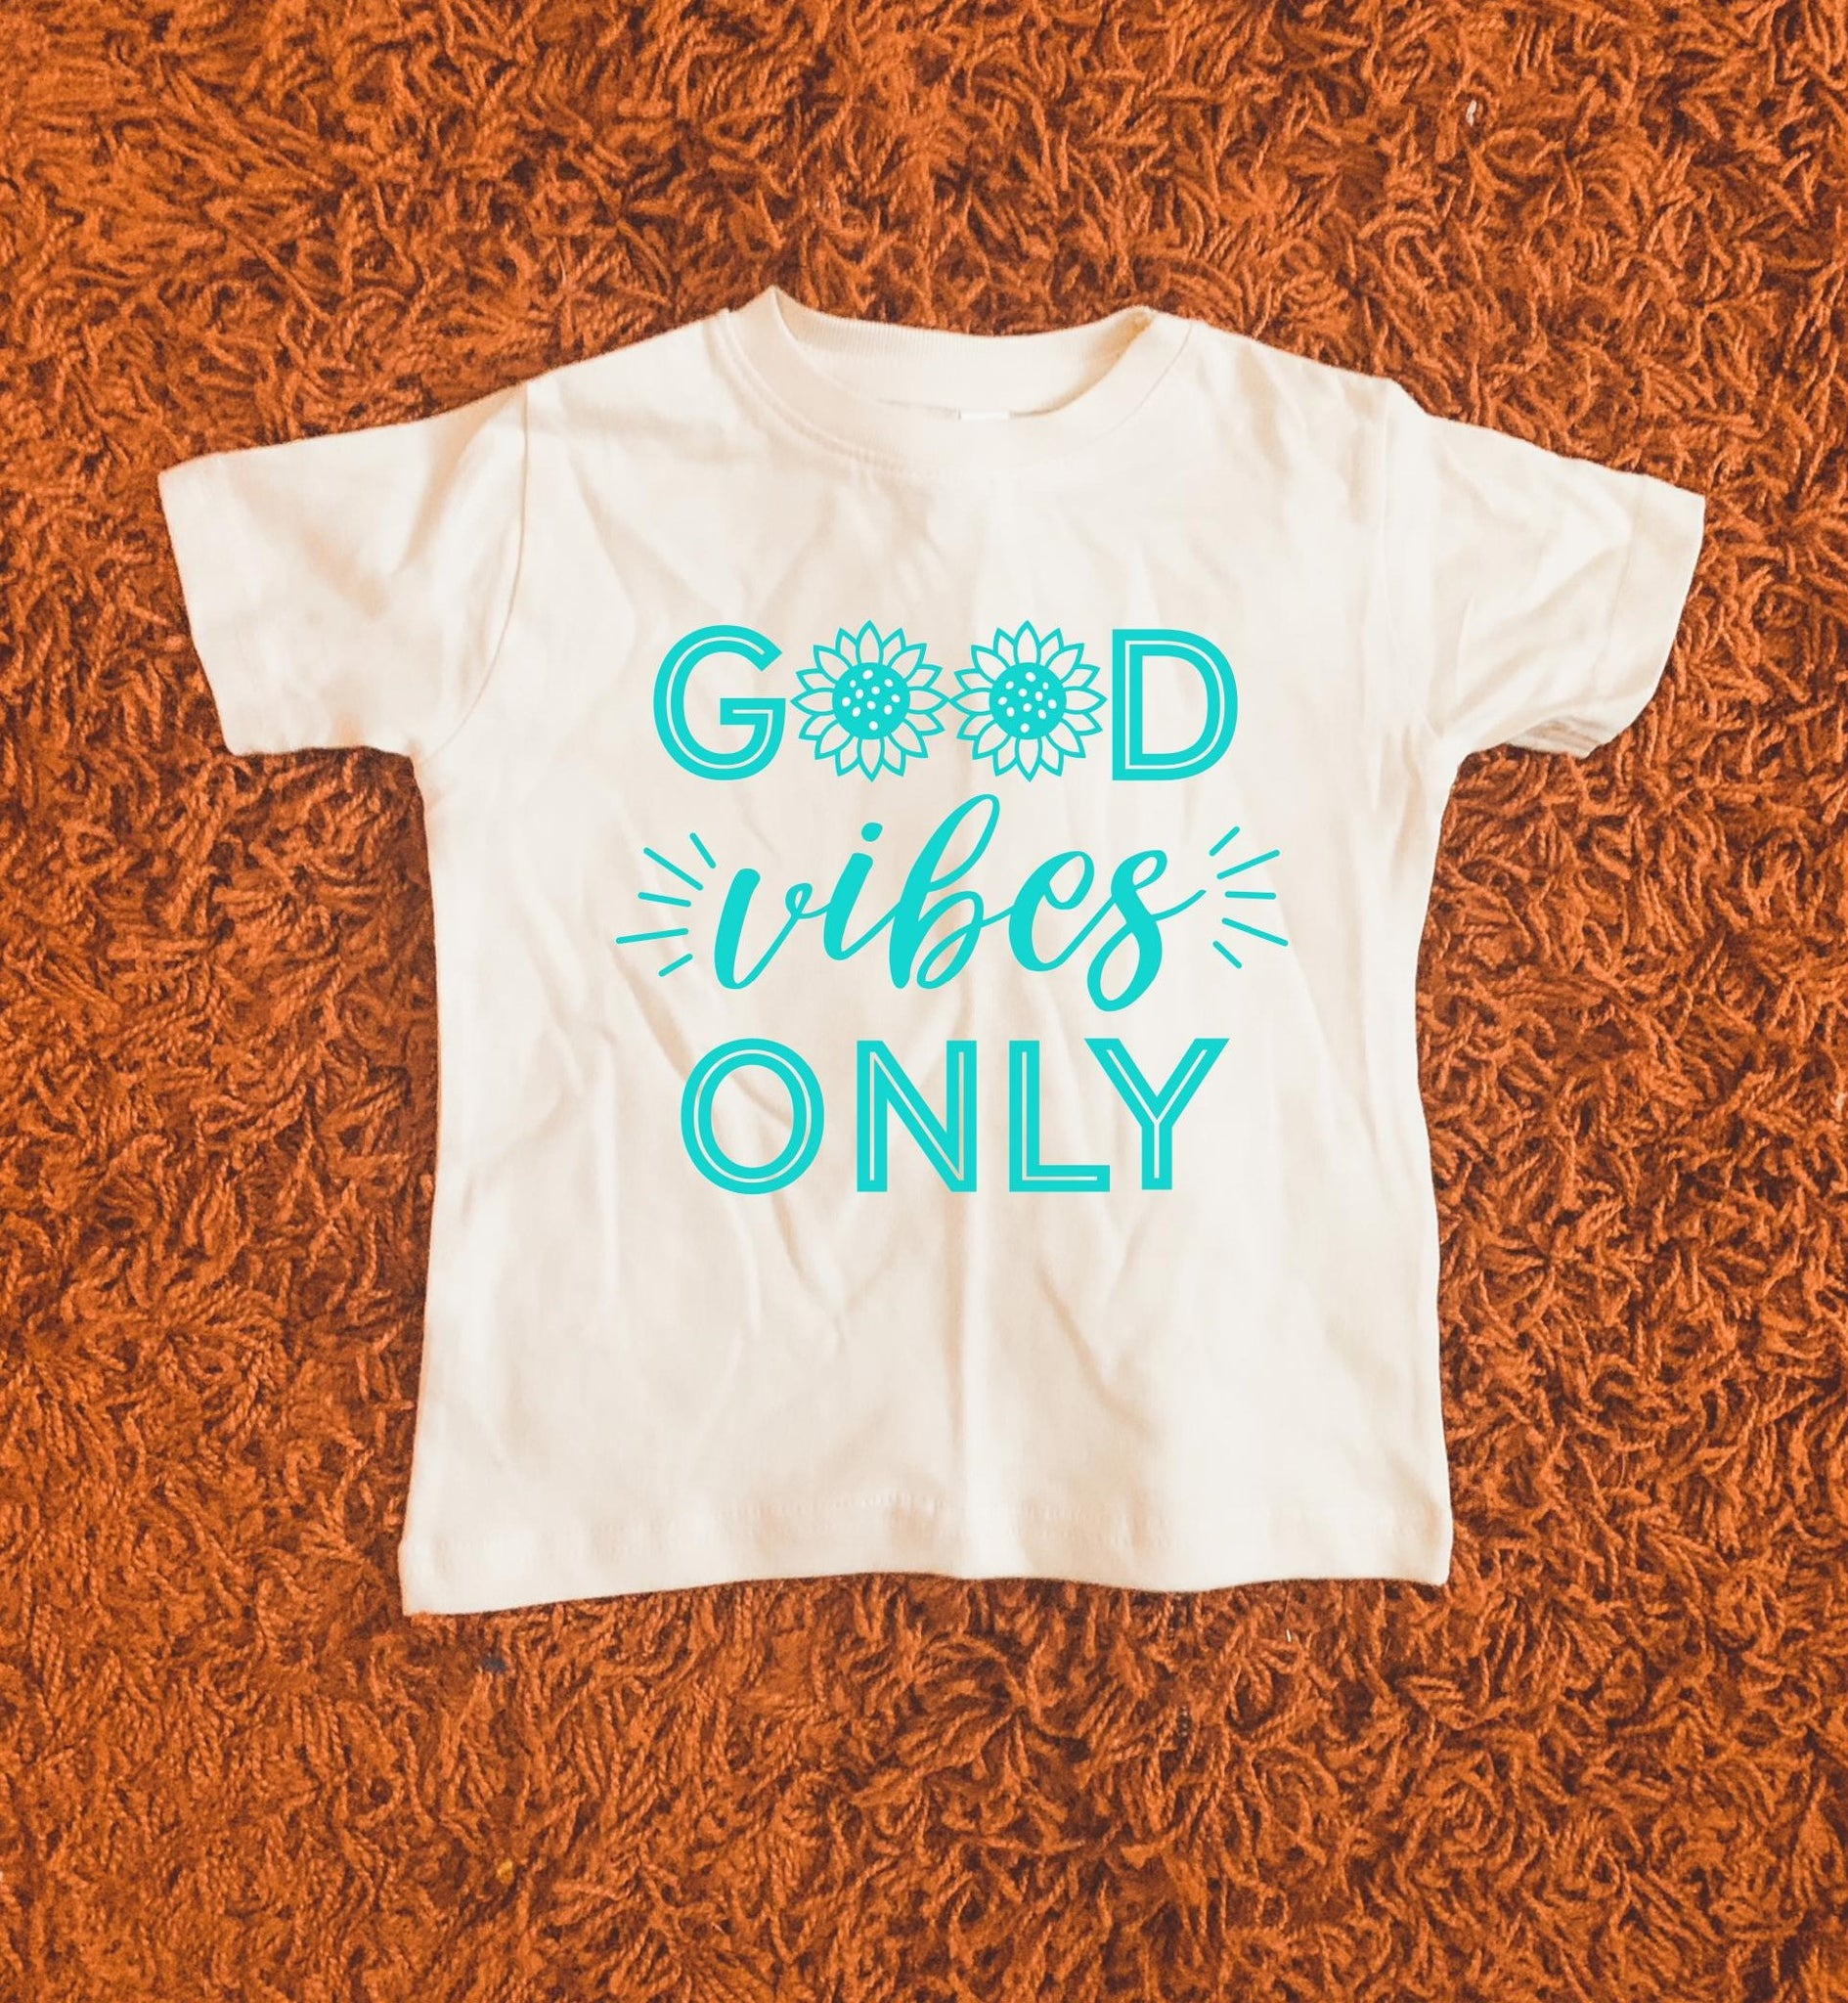 Good vibes only -  Baby Bodysuit - Toddler/Youth Tees